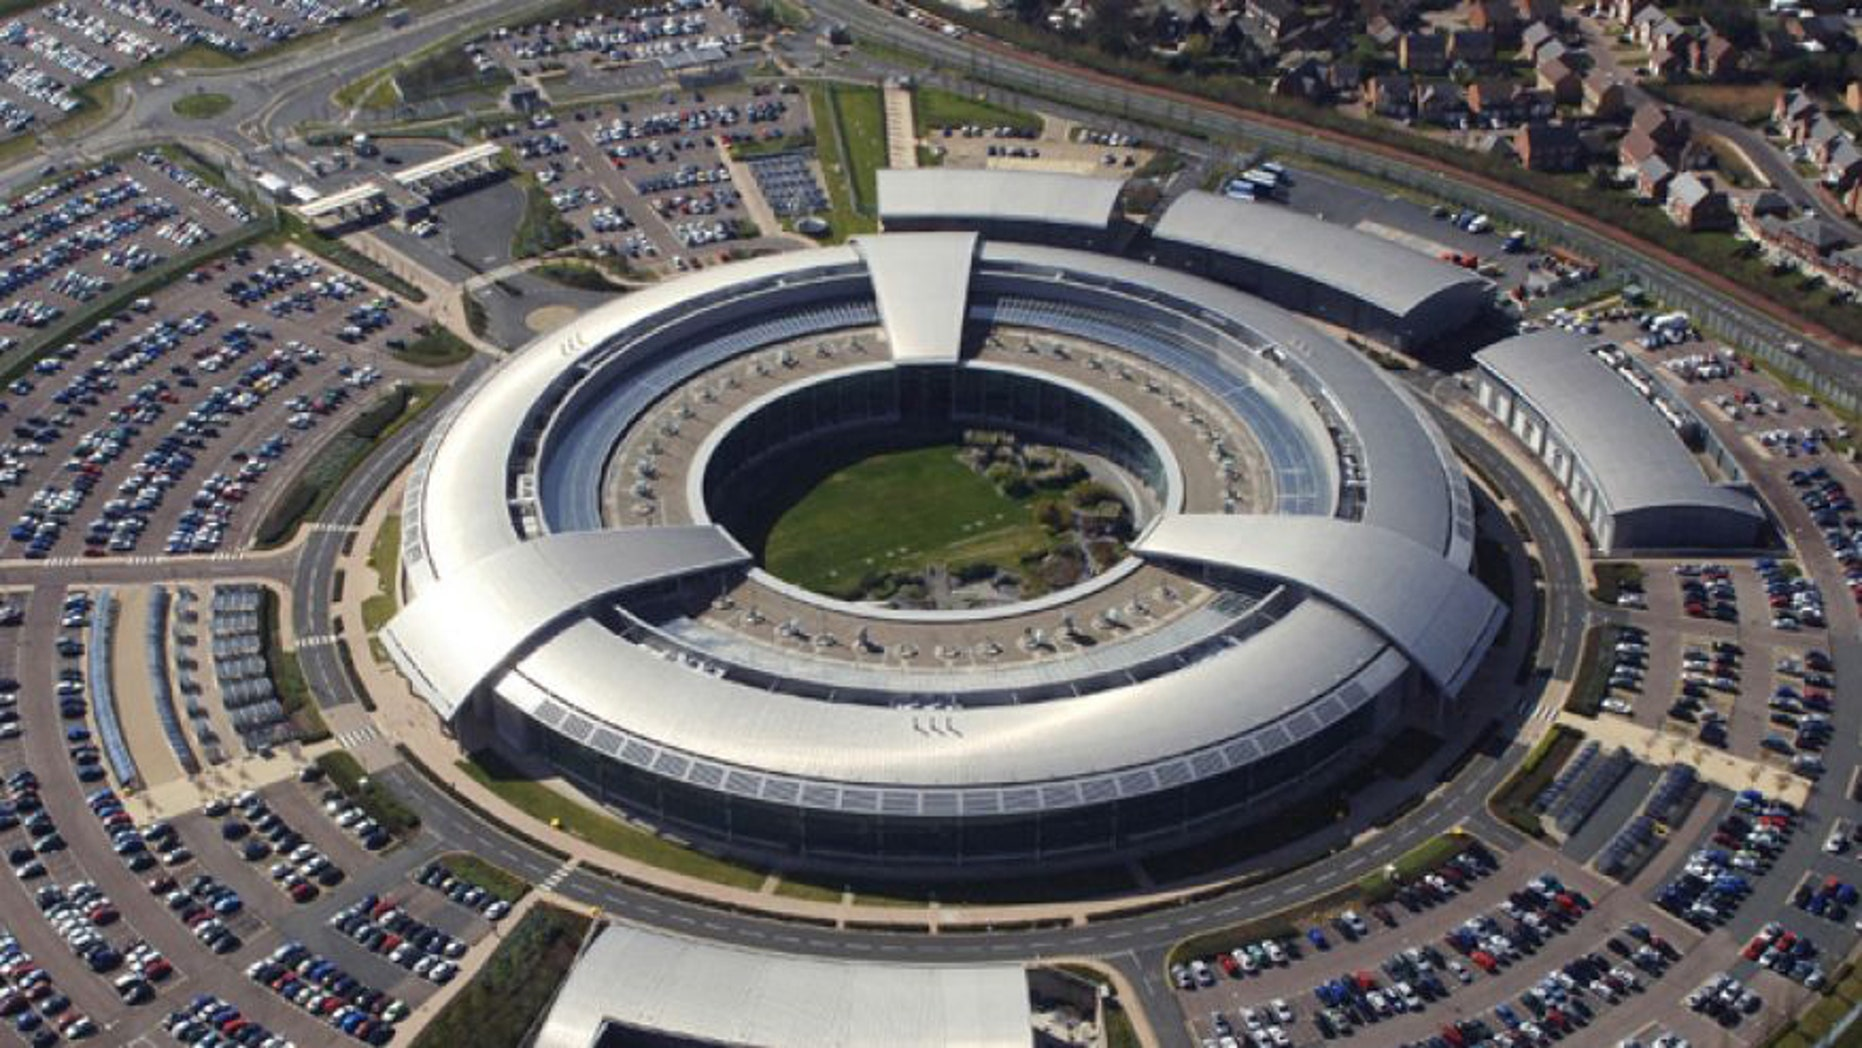 FILE: An aerial image of the Government Communications Headquarters (GCHQ) in Cheltenham, Gloucestershire.